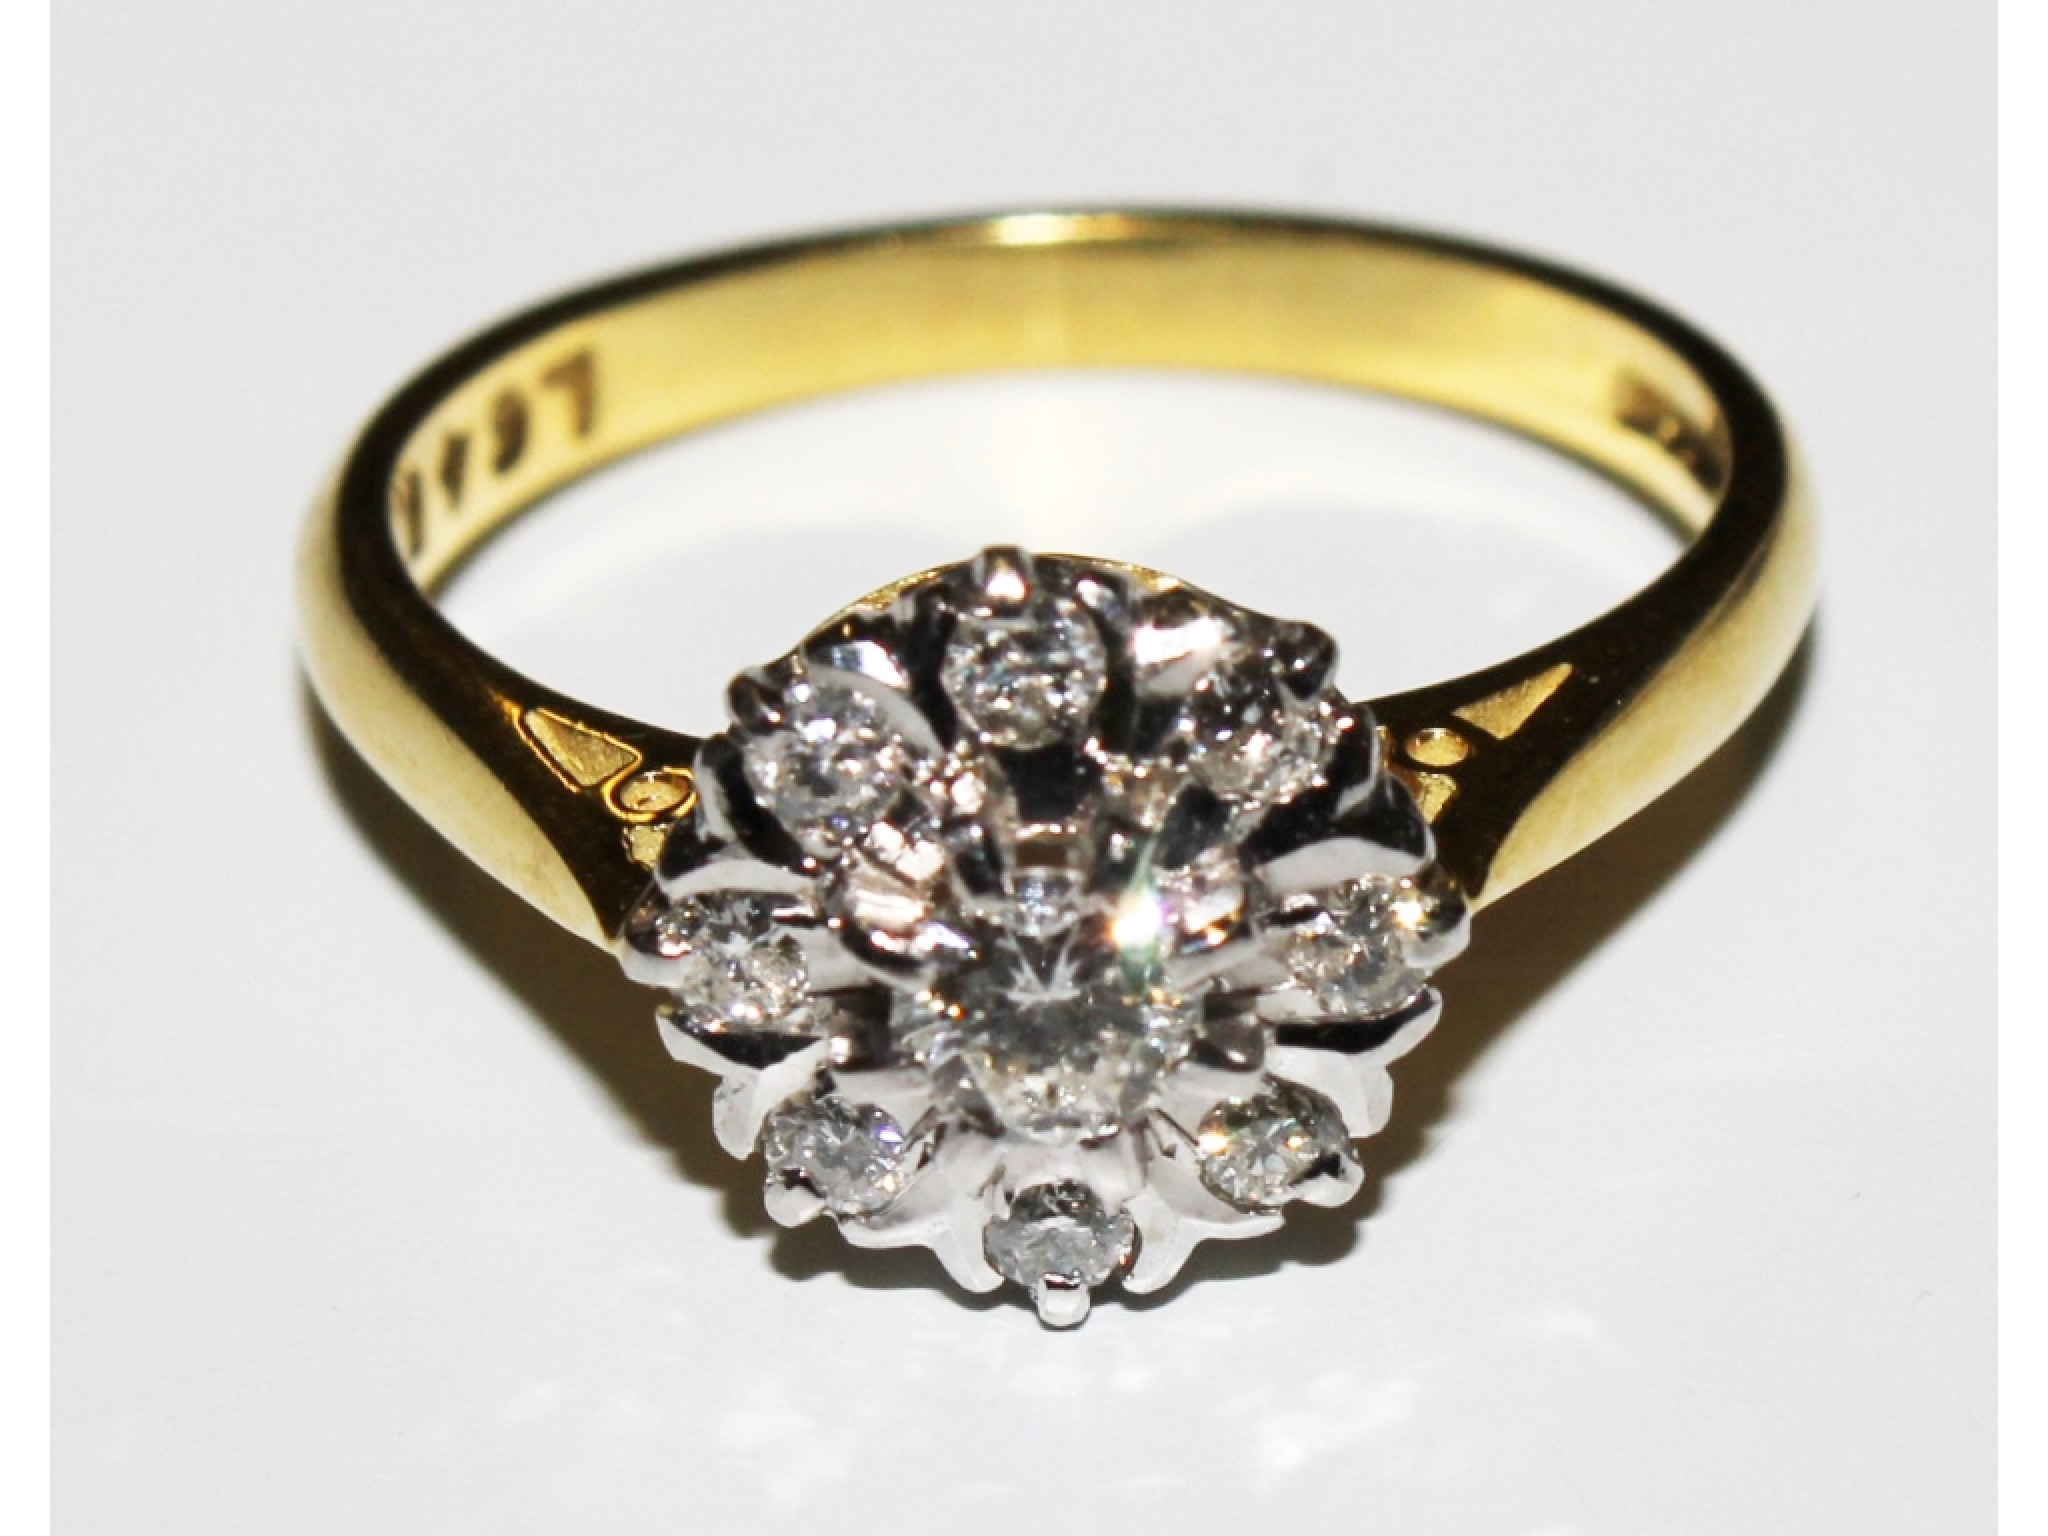 A diamond cluster ring set in 18 carat gold